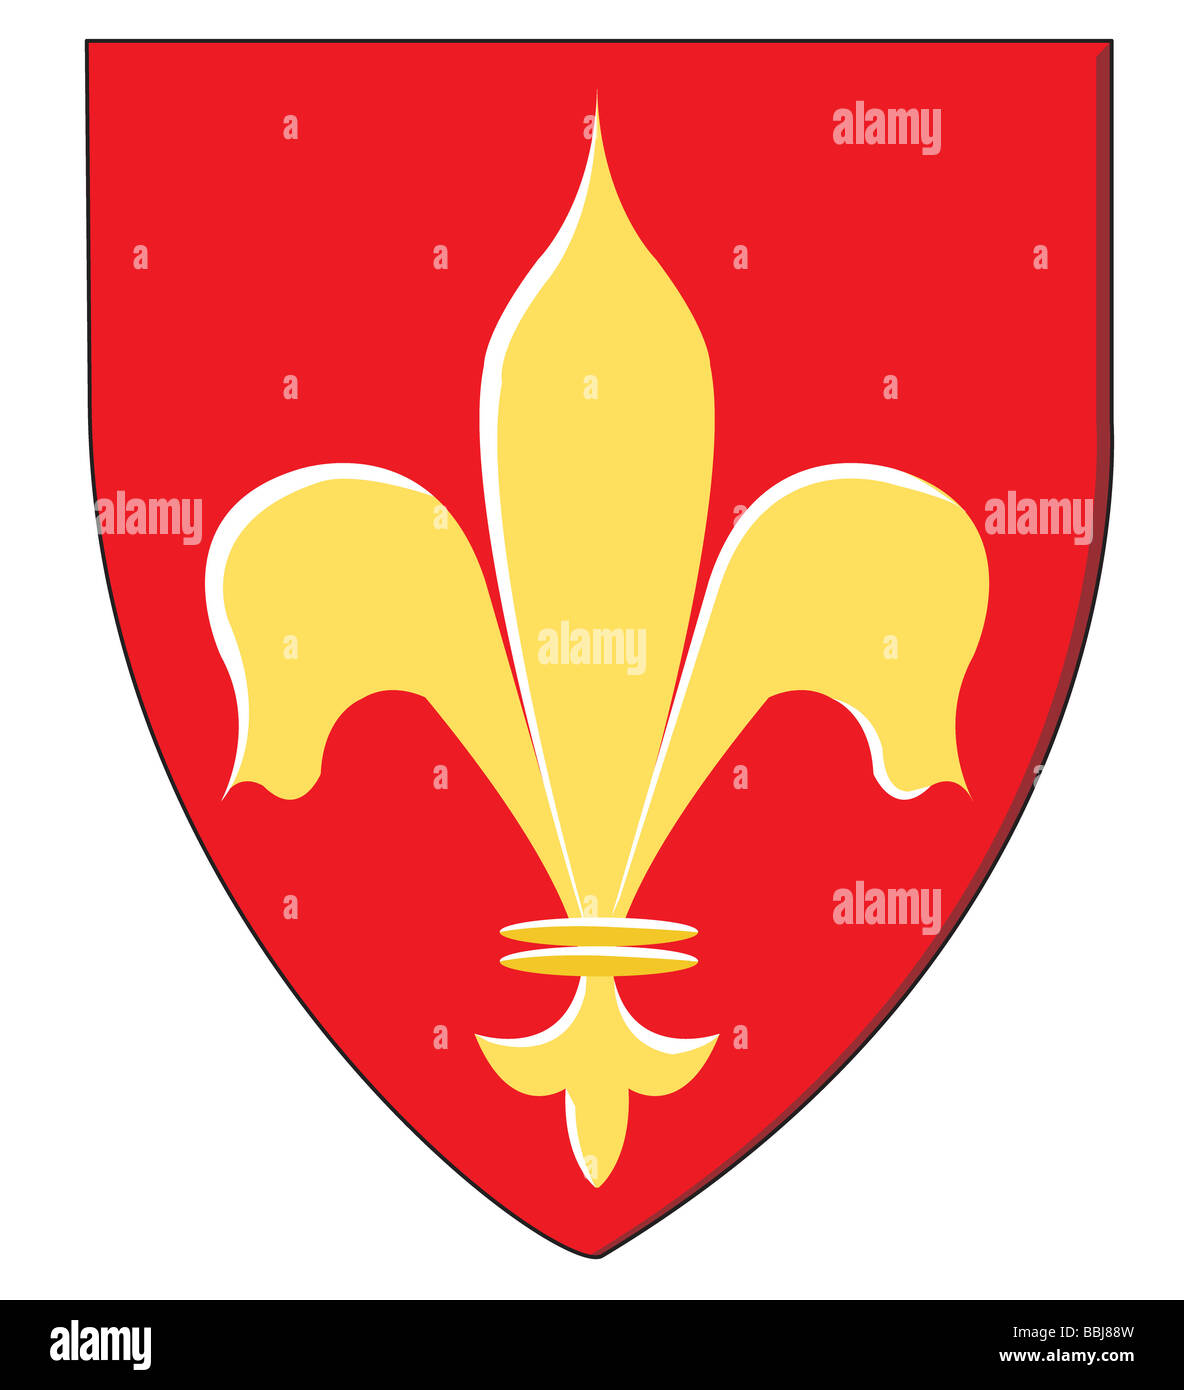 The fleur-de-lis has symbolized the crown of France for nearly 1,000 years. - Stock Image